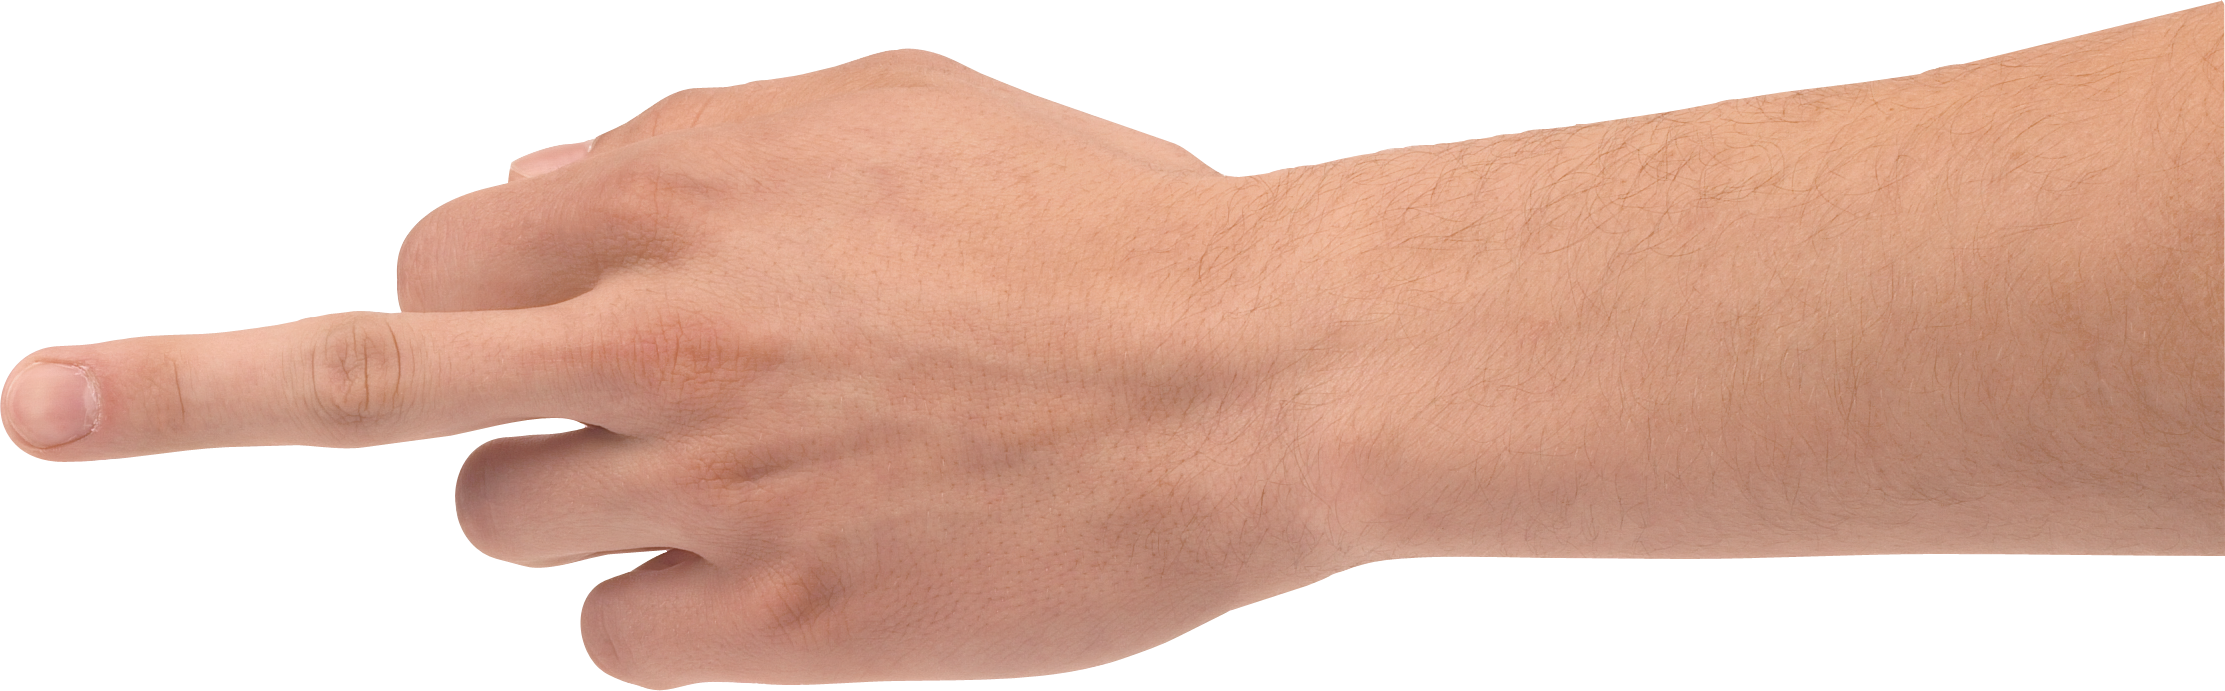 Forty seven isolated stock. Hands clipart forearm